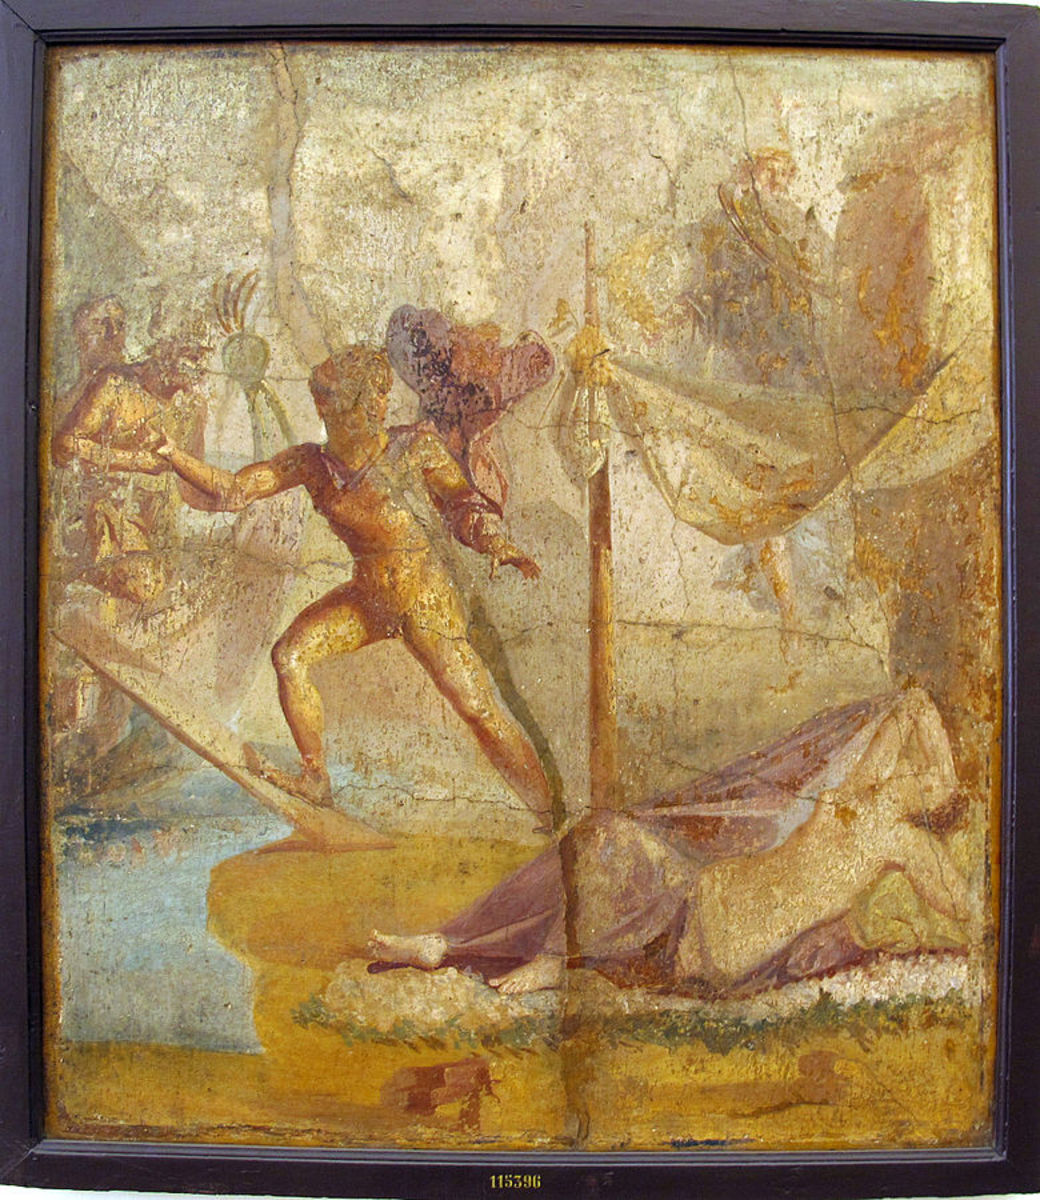 Pompeian fresco of Theseus stealing aboard ship, leaving Ariadne sleeping.